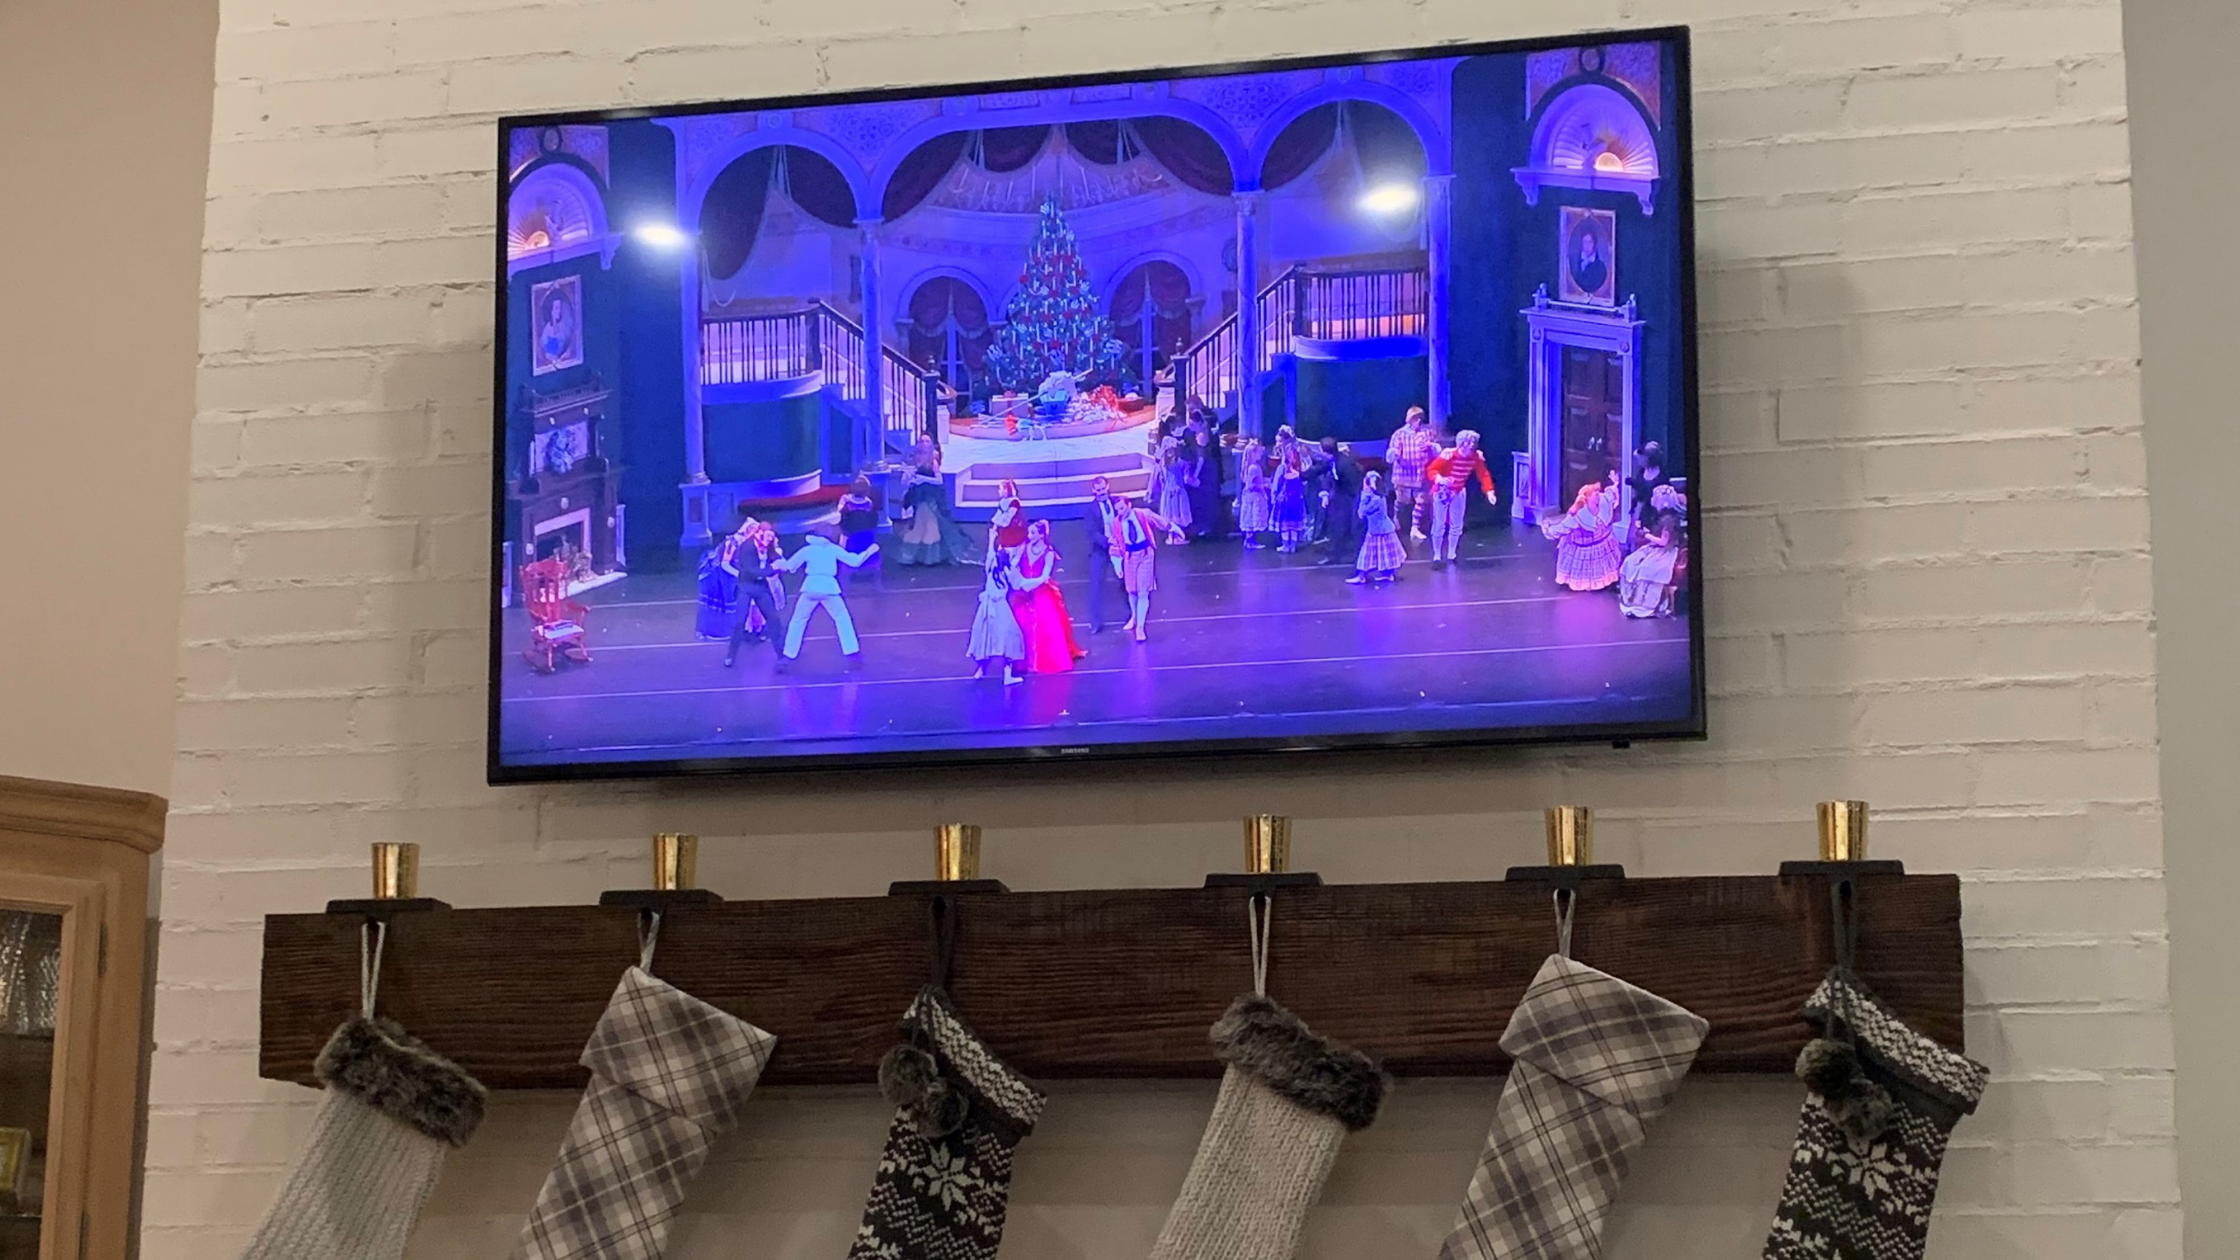 Act 1 of The Nutcracker playing on a TV hanging above a fireplace